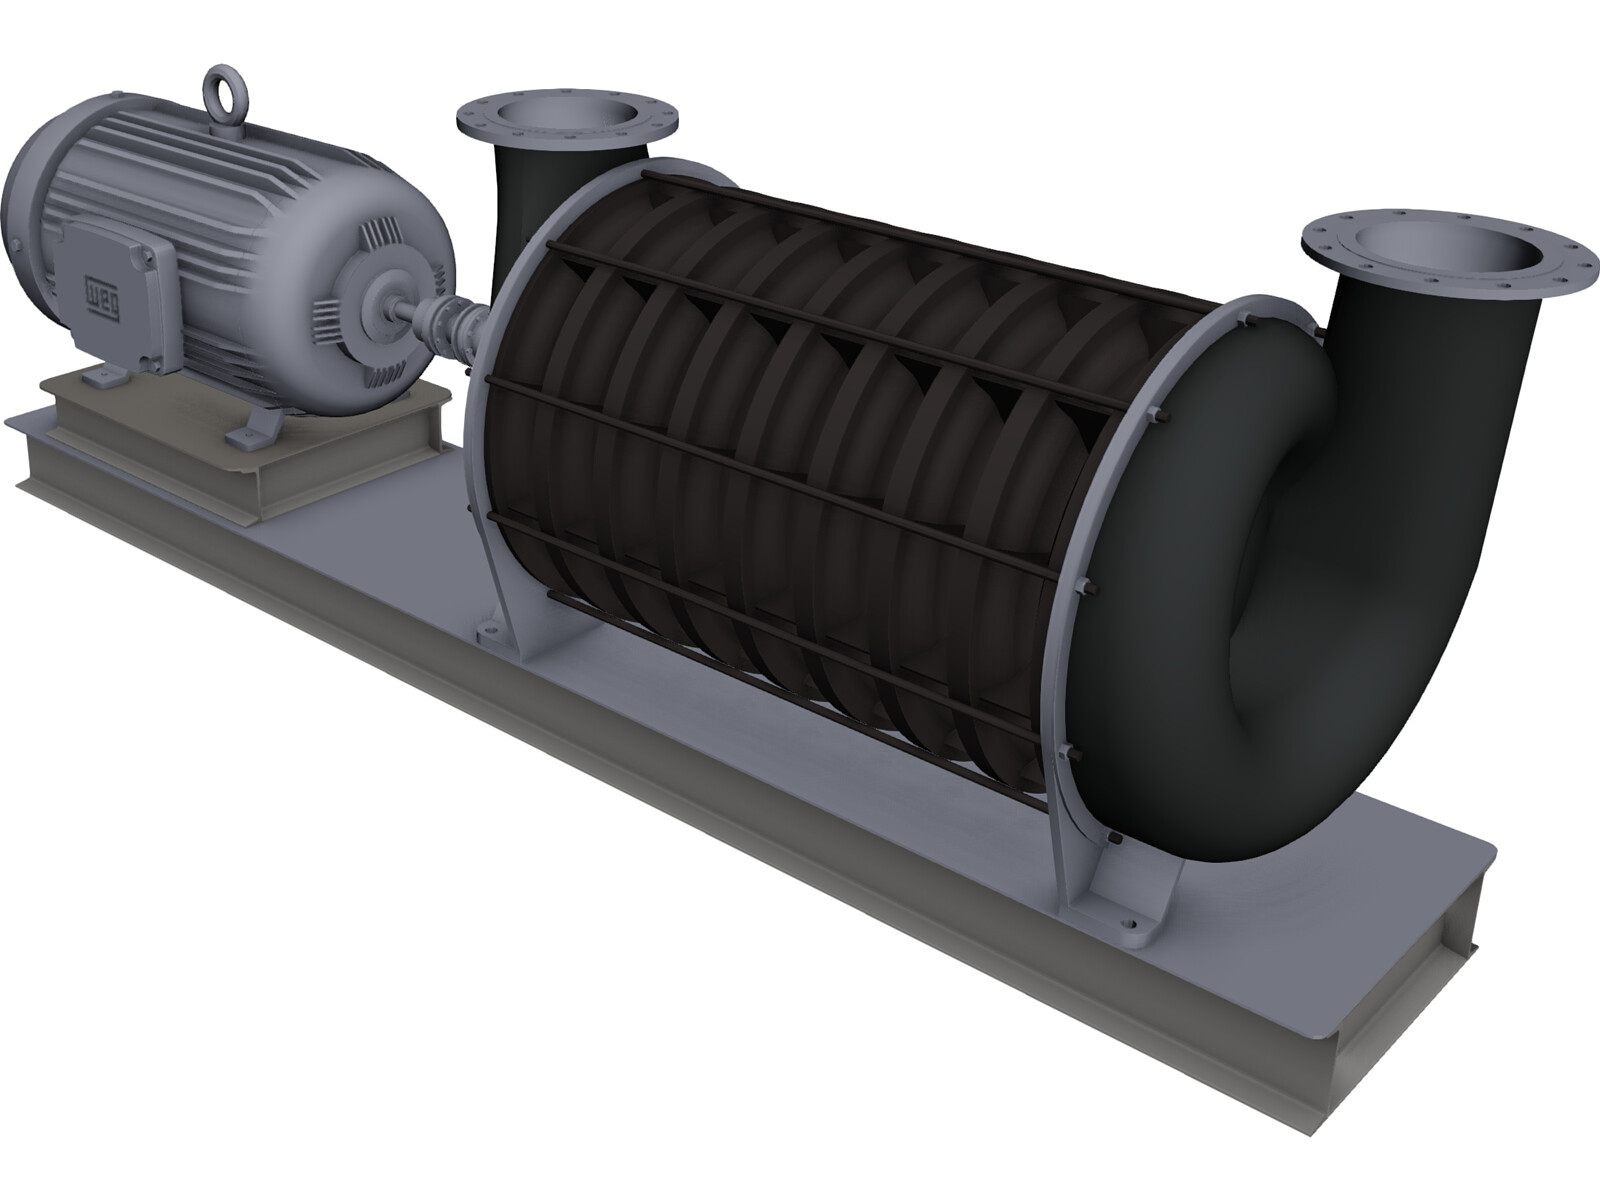 HSI Centrifugal Blower 3D CAD Model